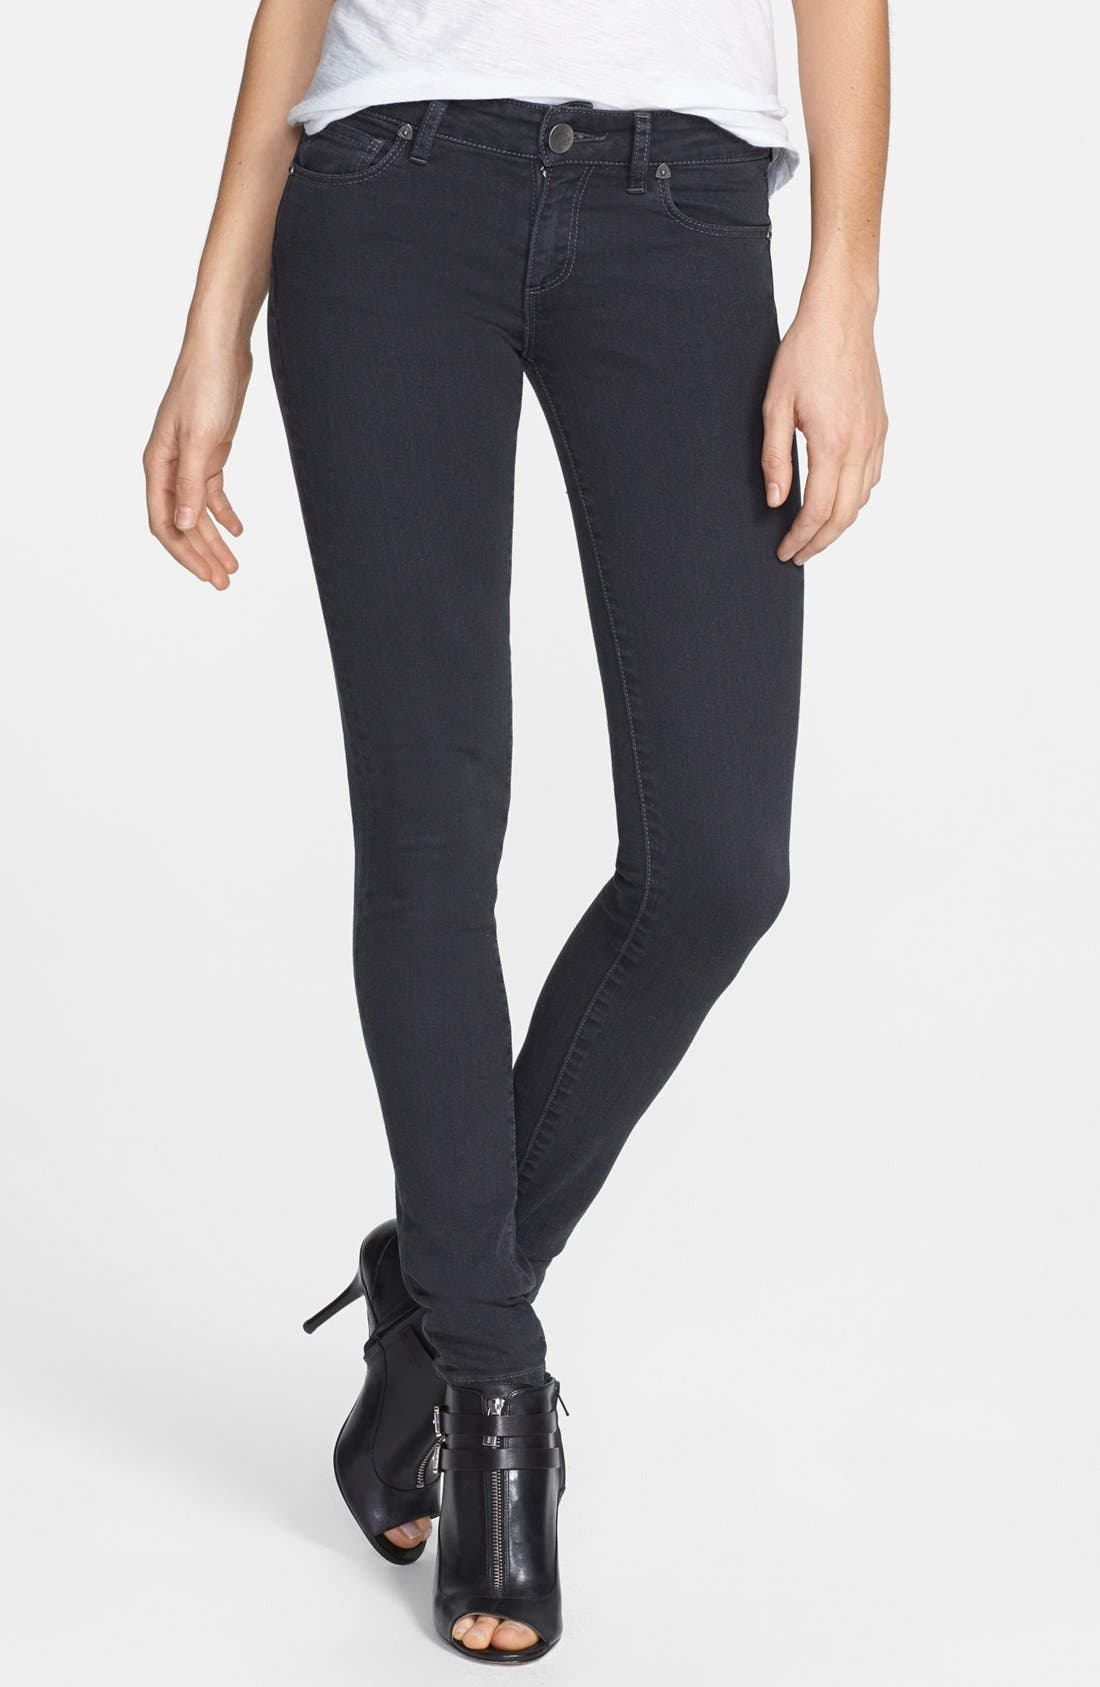 Main Image - KUT from the Kloth 'Elle' Skinny Jeans (Interest)